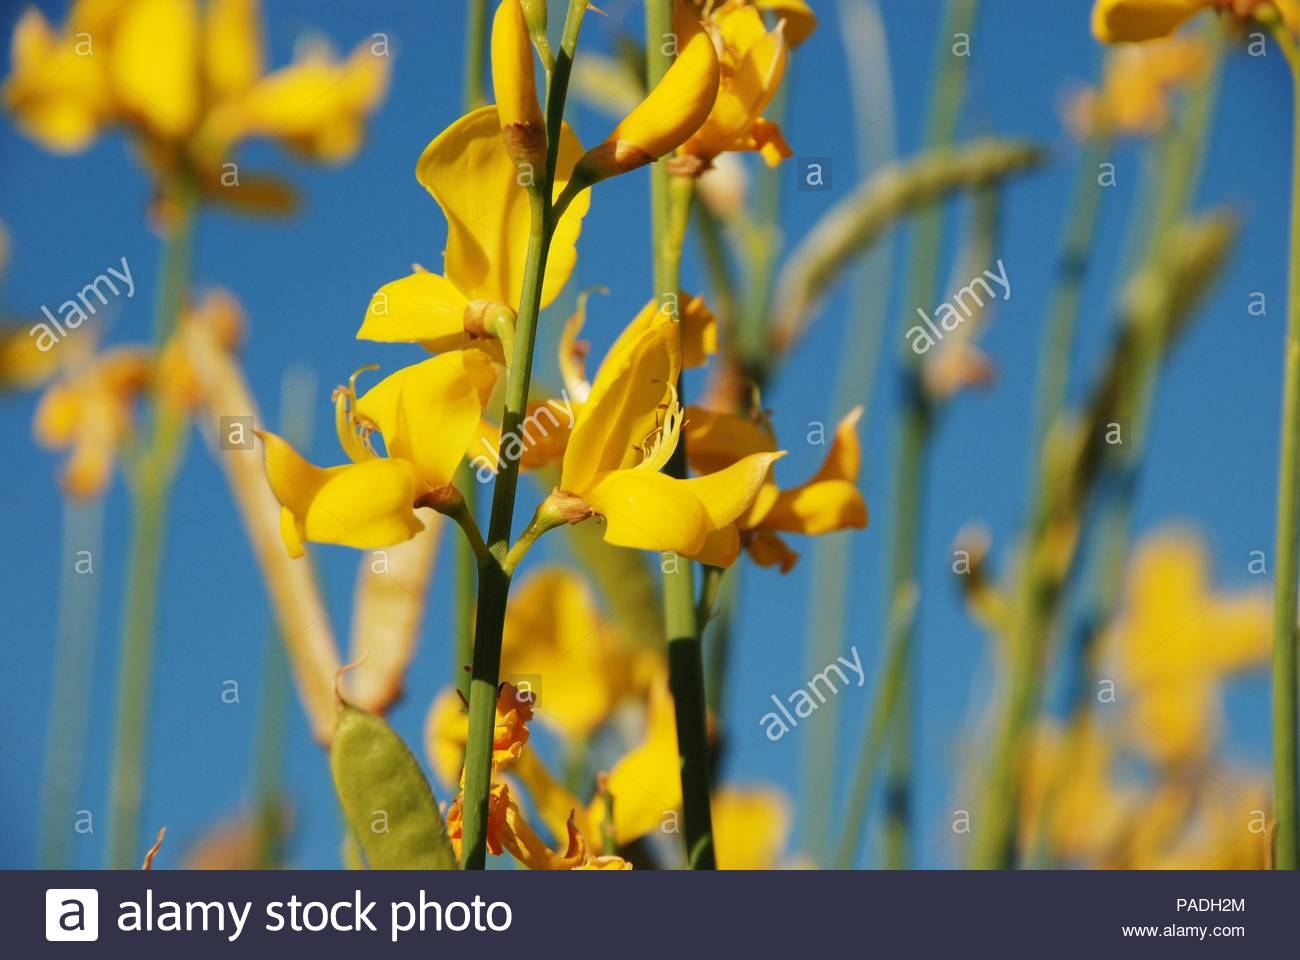 Yellow Broom Flowers And Blue Sky Stock Photo 212969756 Alamy